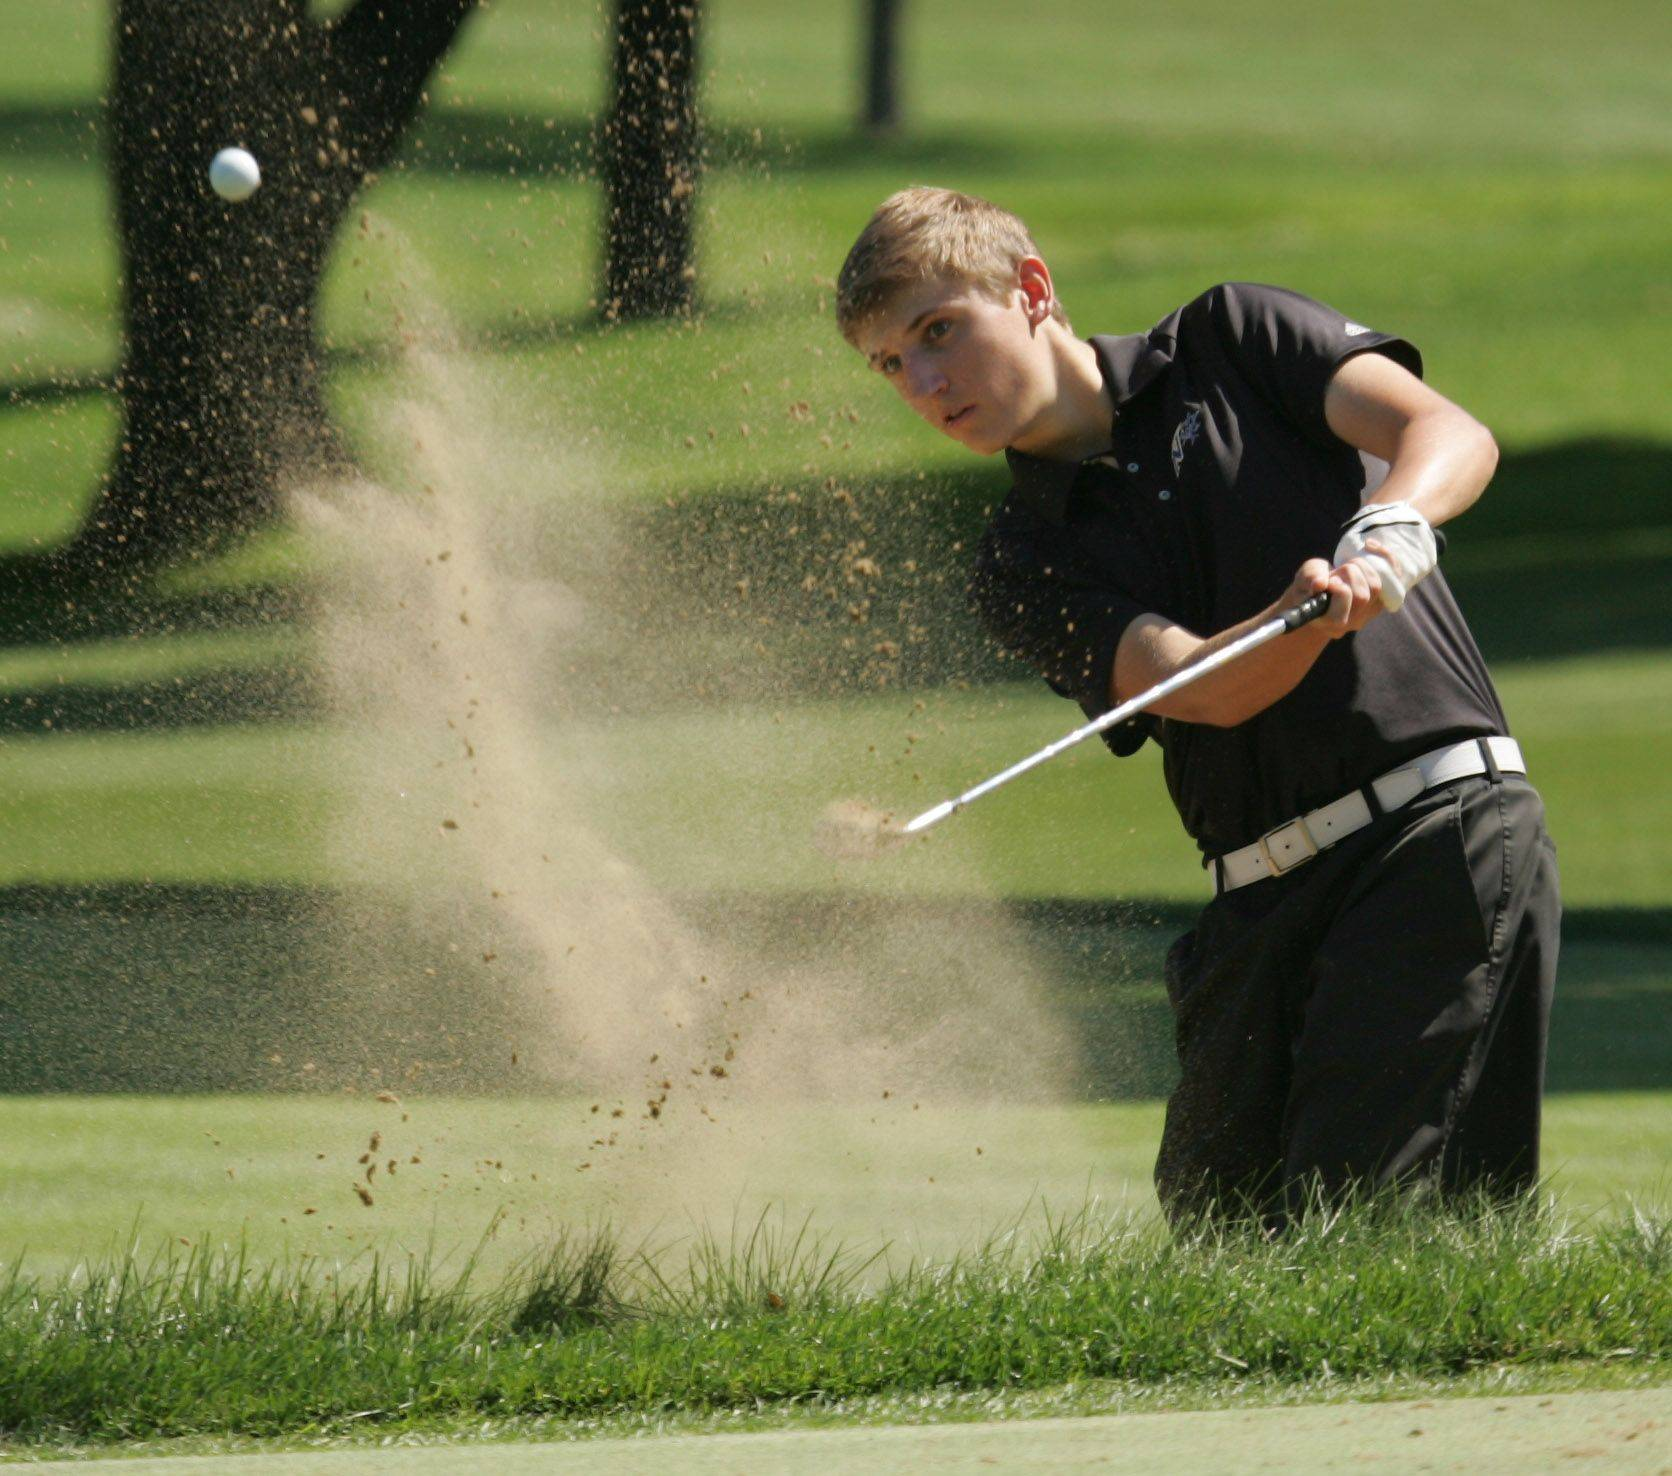 St. Charles North senior John Carroll places a near-perfect sand shot within a foot of the cup Monday morning during the McChesney Classic golf tournament at Geneva Golf Club.